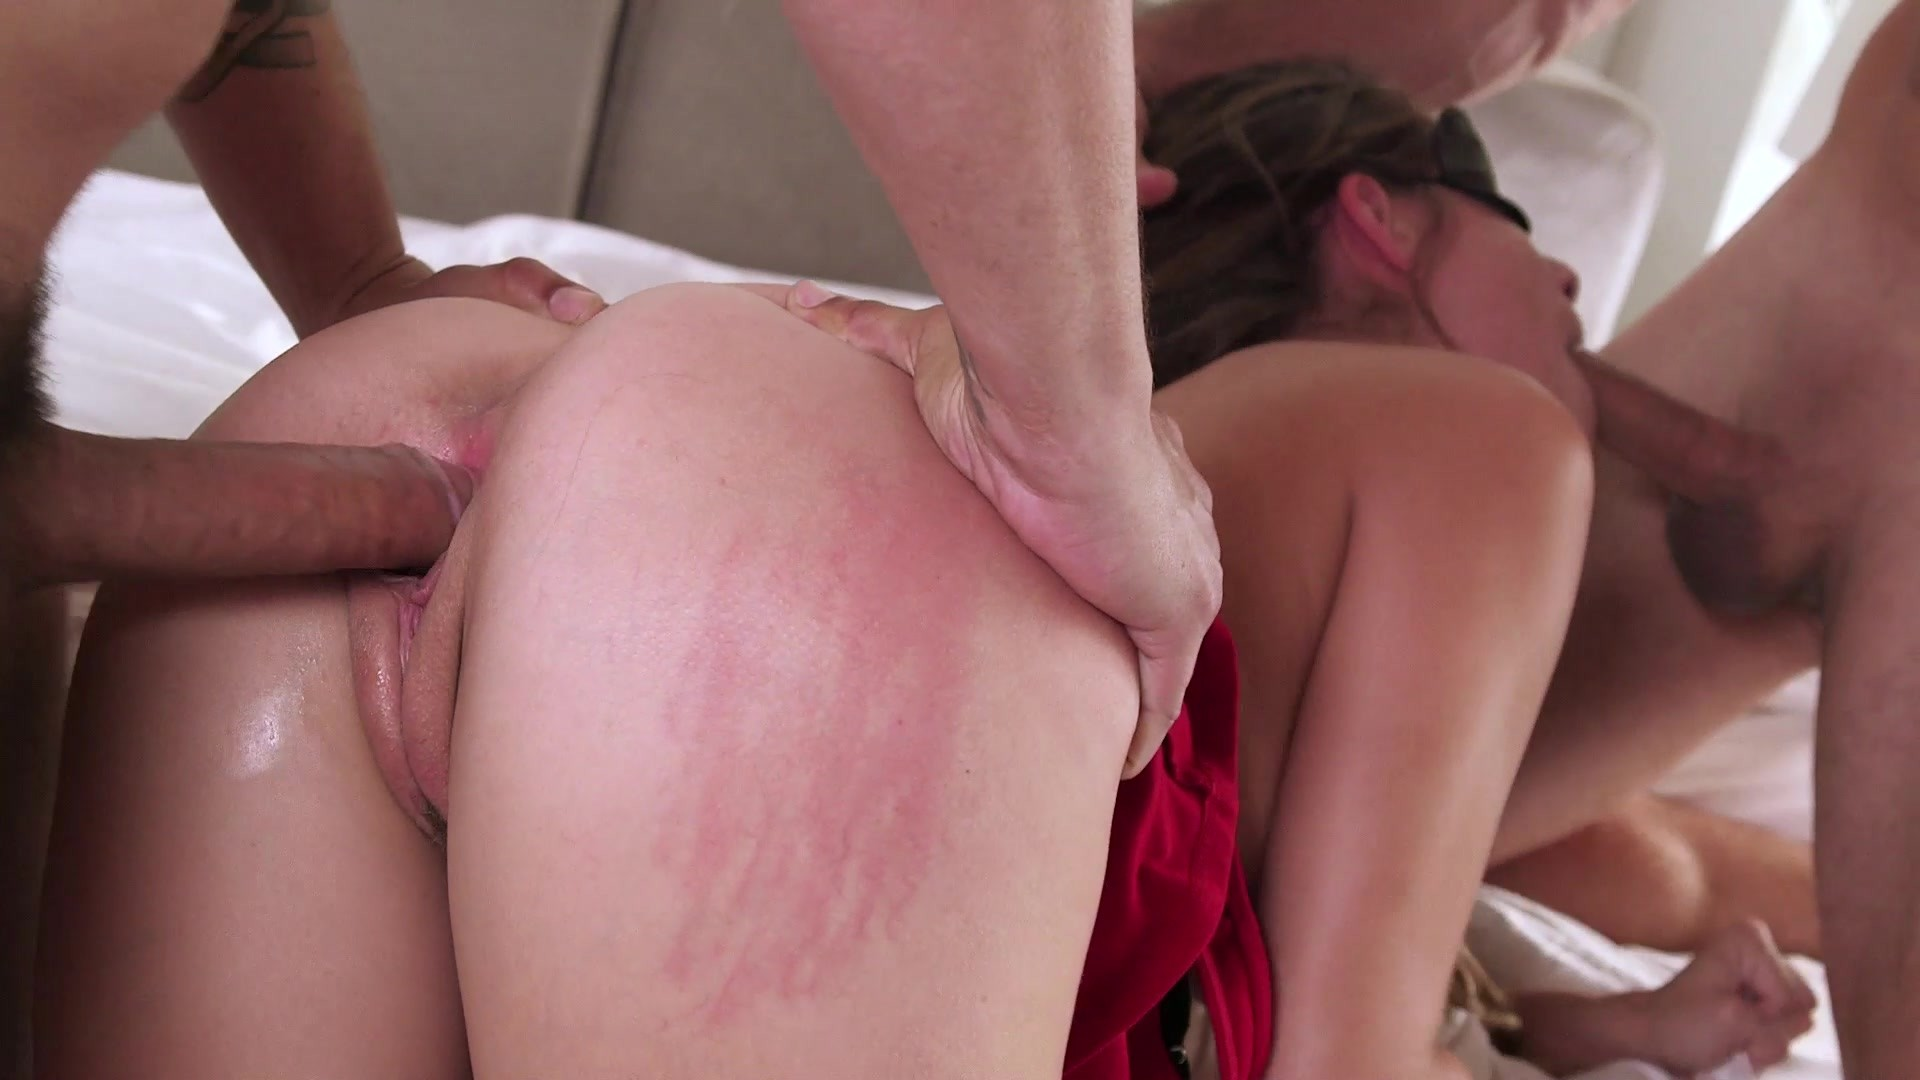 Scene with Anthony Rosano and Cassidy Klein - image 19 out of 20